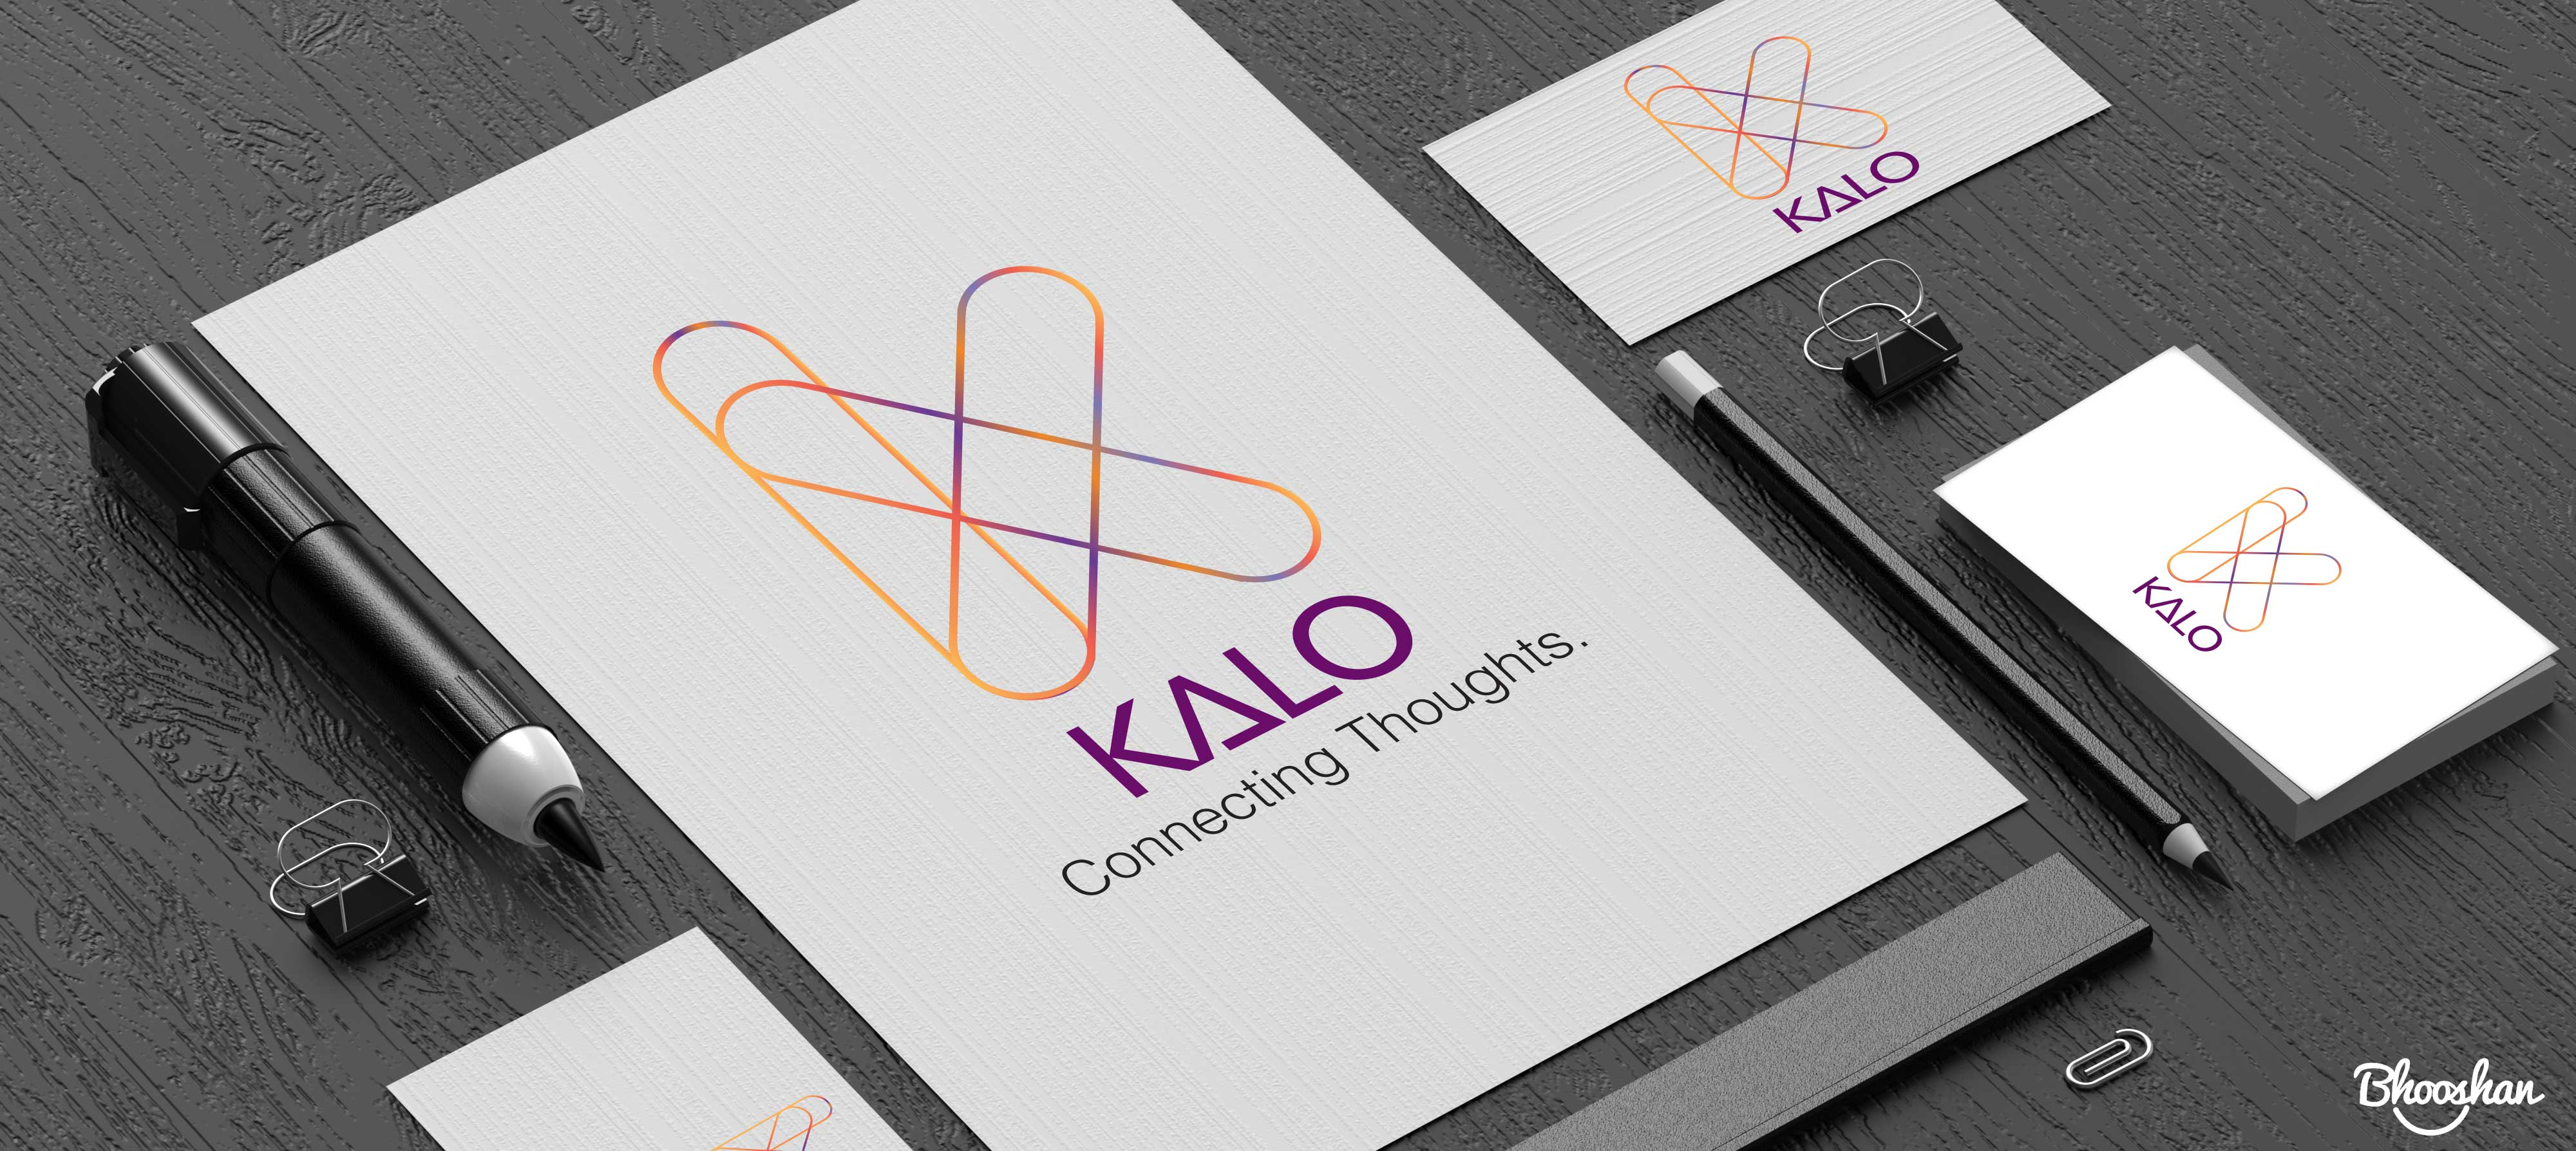 Kalo Healthcare Solutions - Final Identity